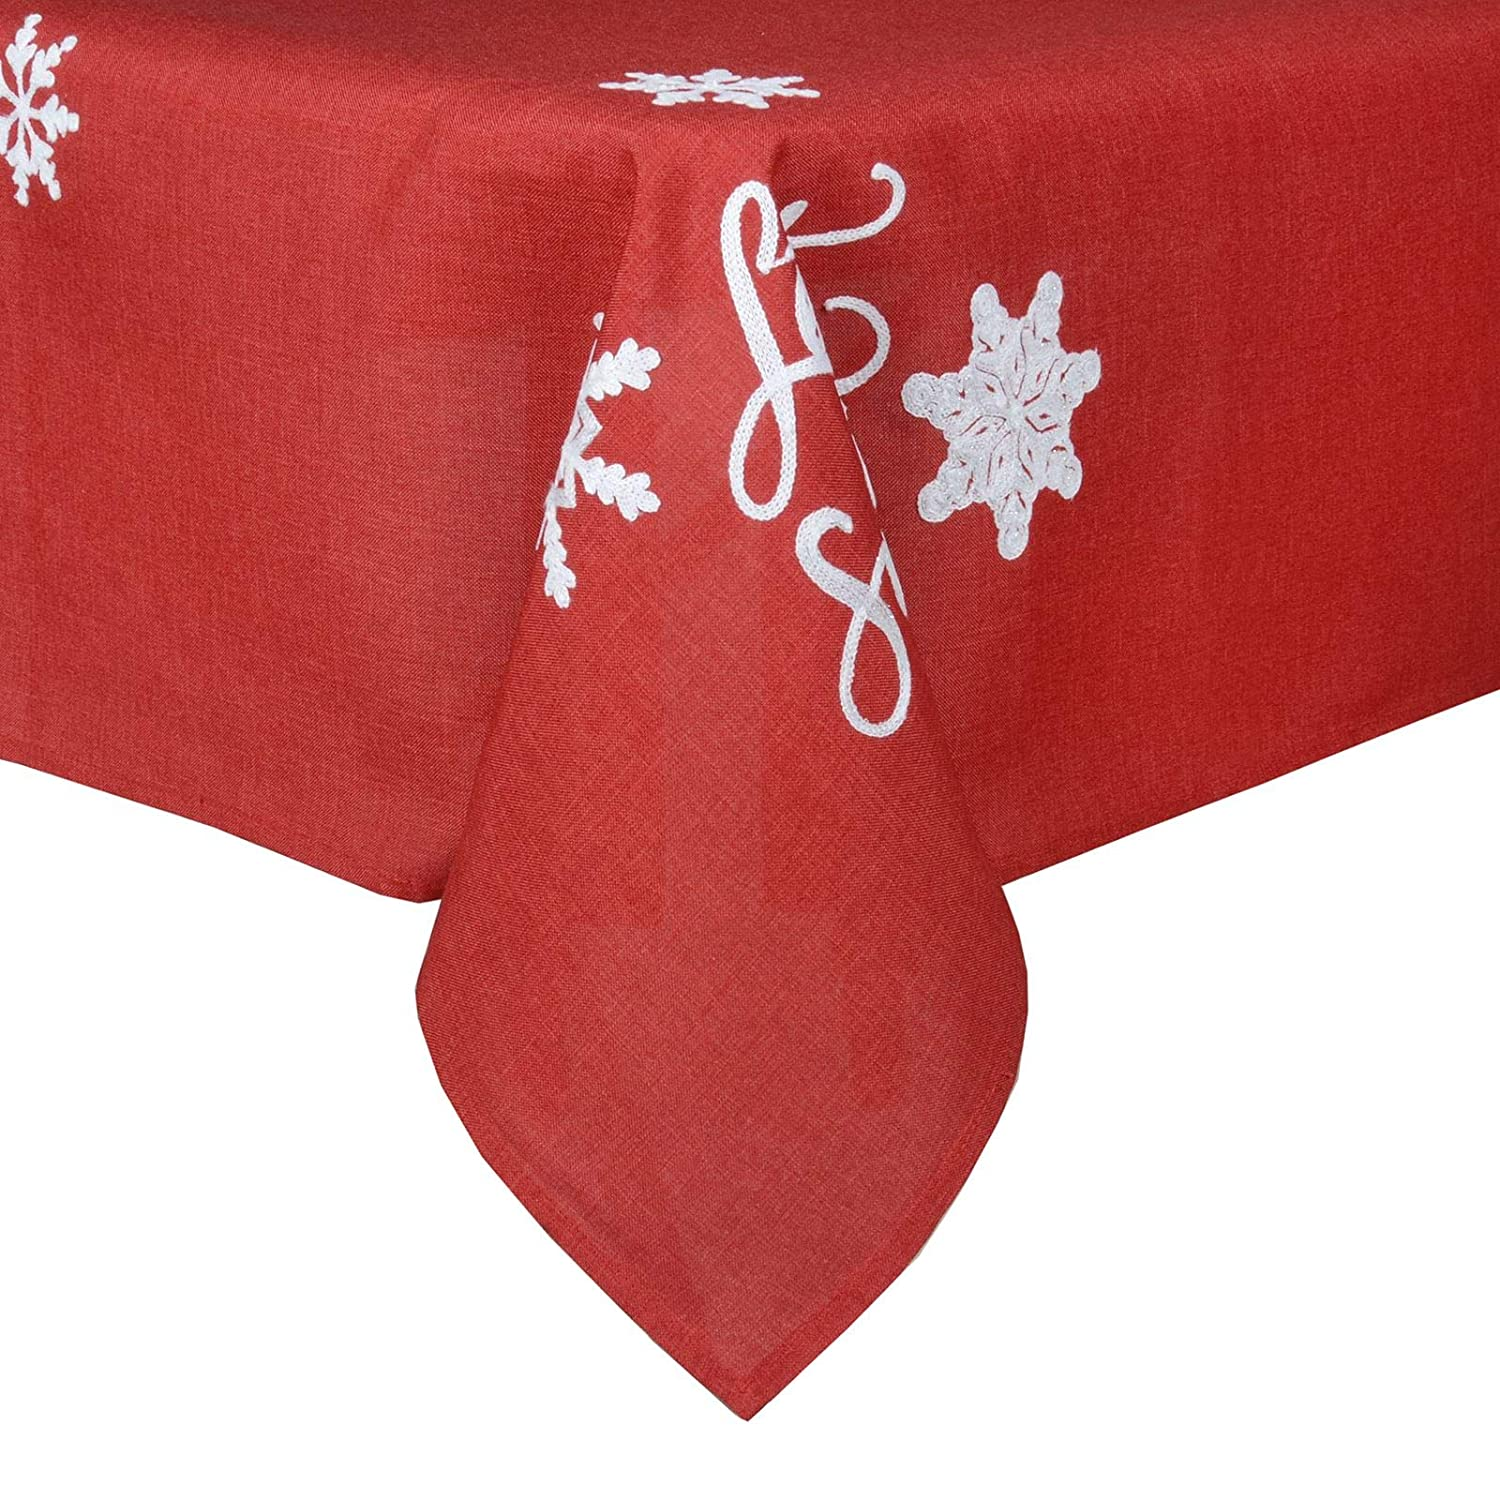 Pack Of 4 Square Fabric Table Napkins Material Serviette For Christmas 16x16 White